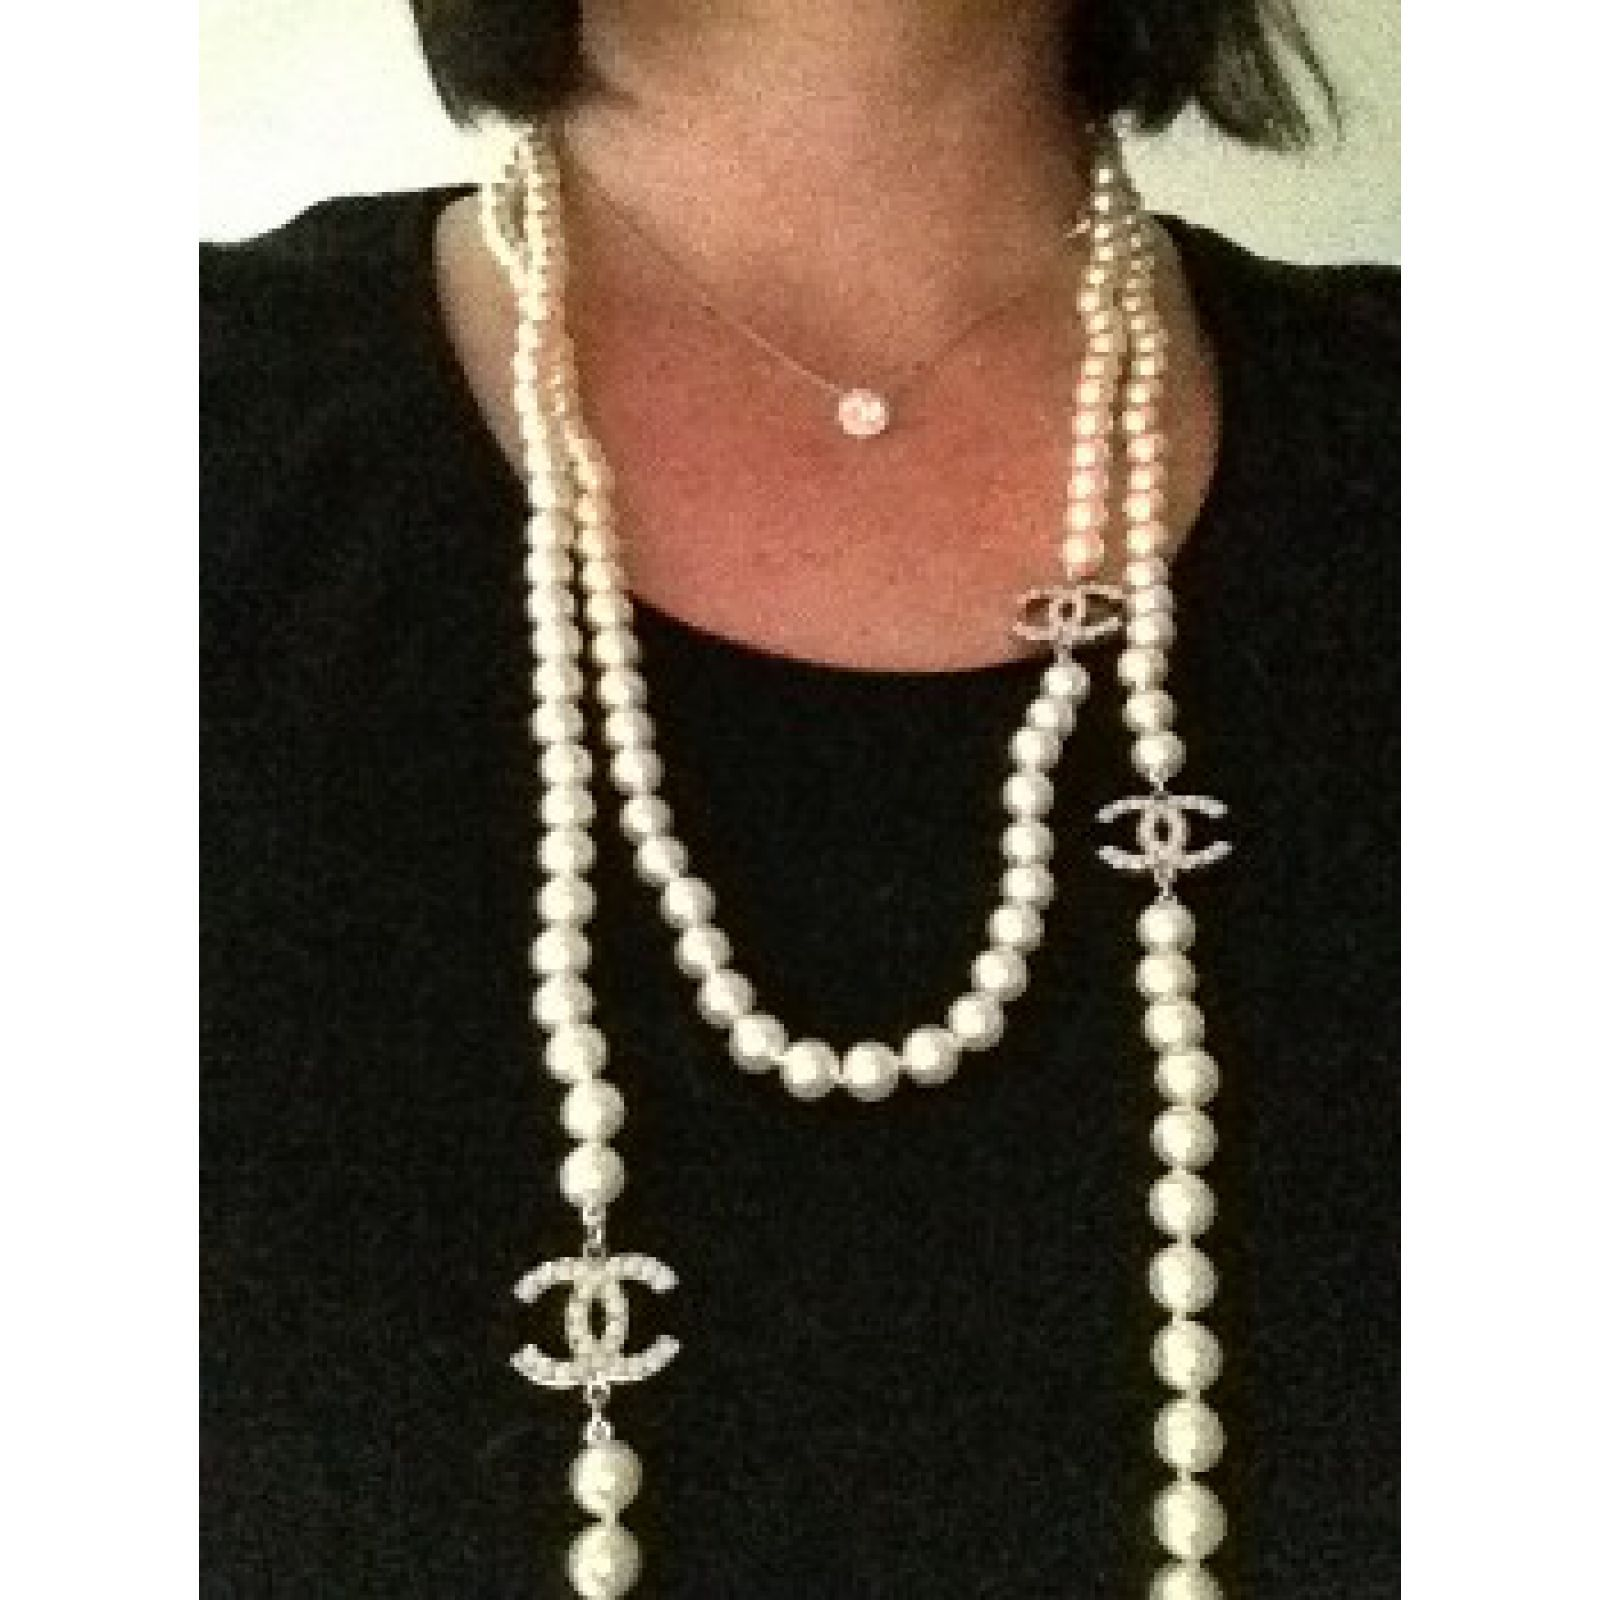 chanel long necklace chanel timeless 3 cc pearl necklace. Black Bedroom Furniture Sets. Home Design Ideas